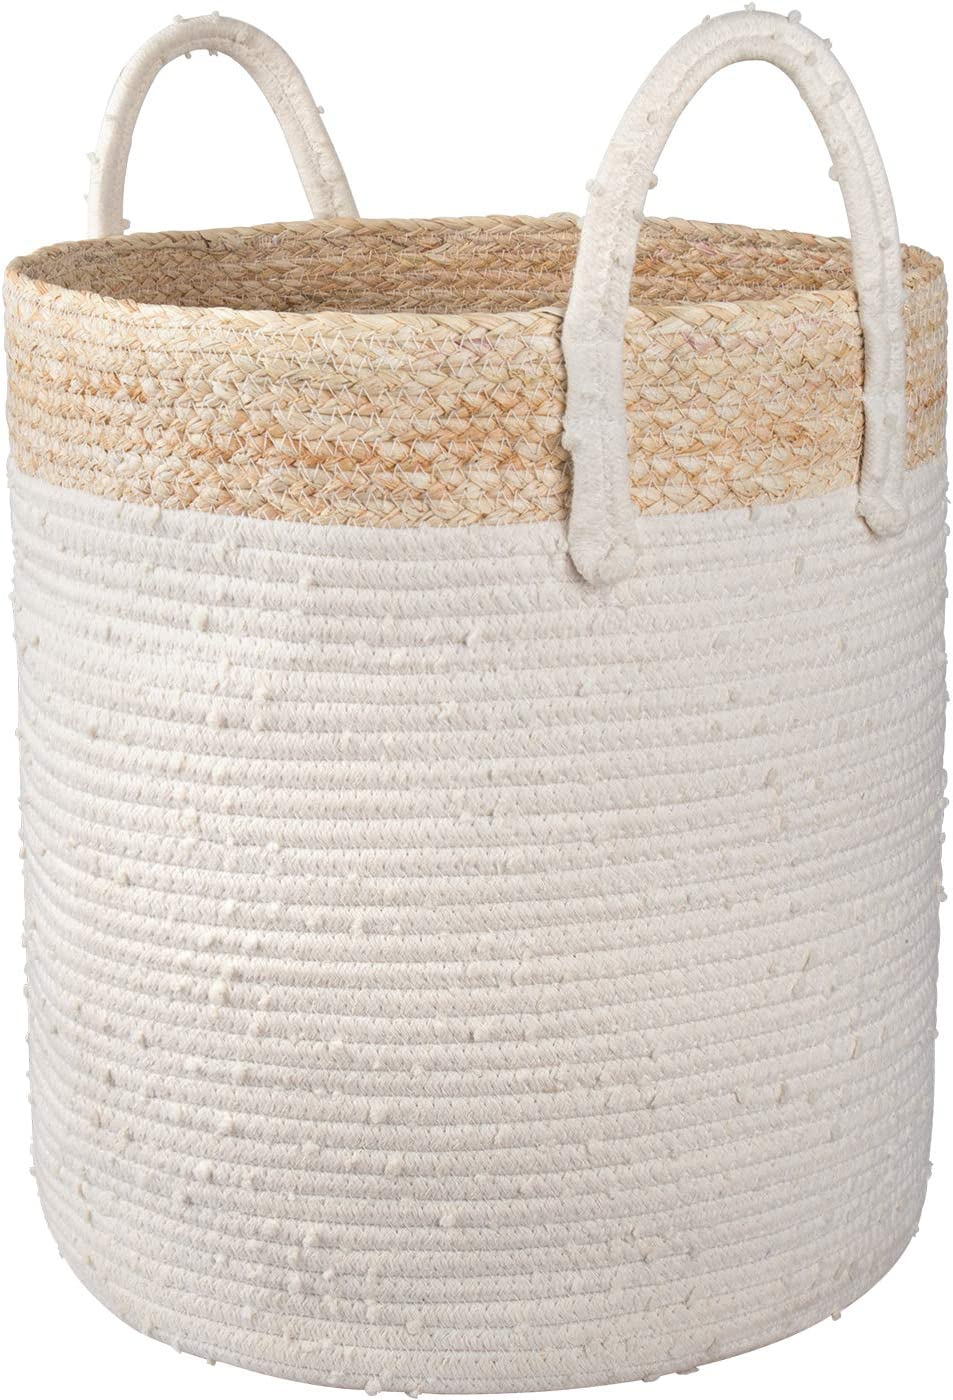 LA JOLIE MUSE Woven Basket Rope Storage Basket - Large Cotton Organizer 16 x 14 x 14 Inches, Natural and Safe for Baby and Kids, Two-Tone Woven Organizer with Corn Skin